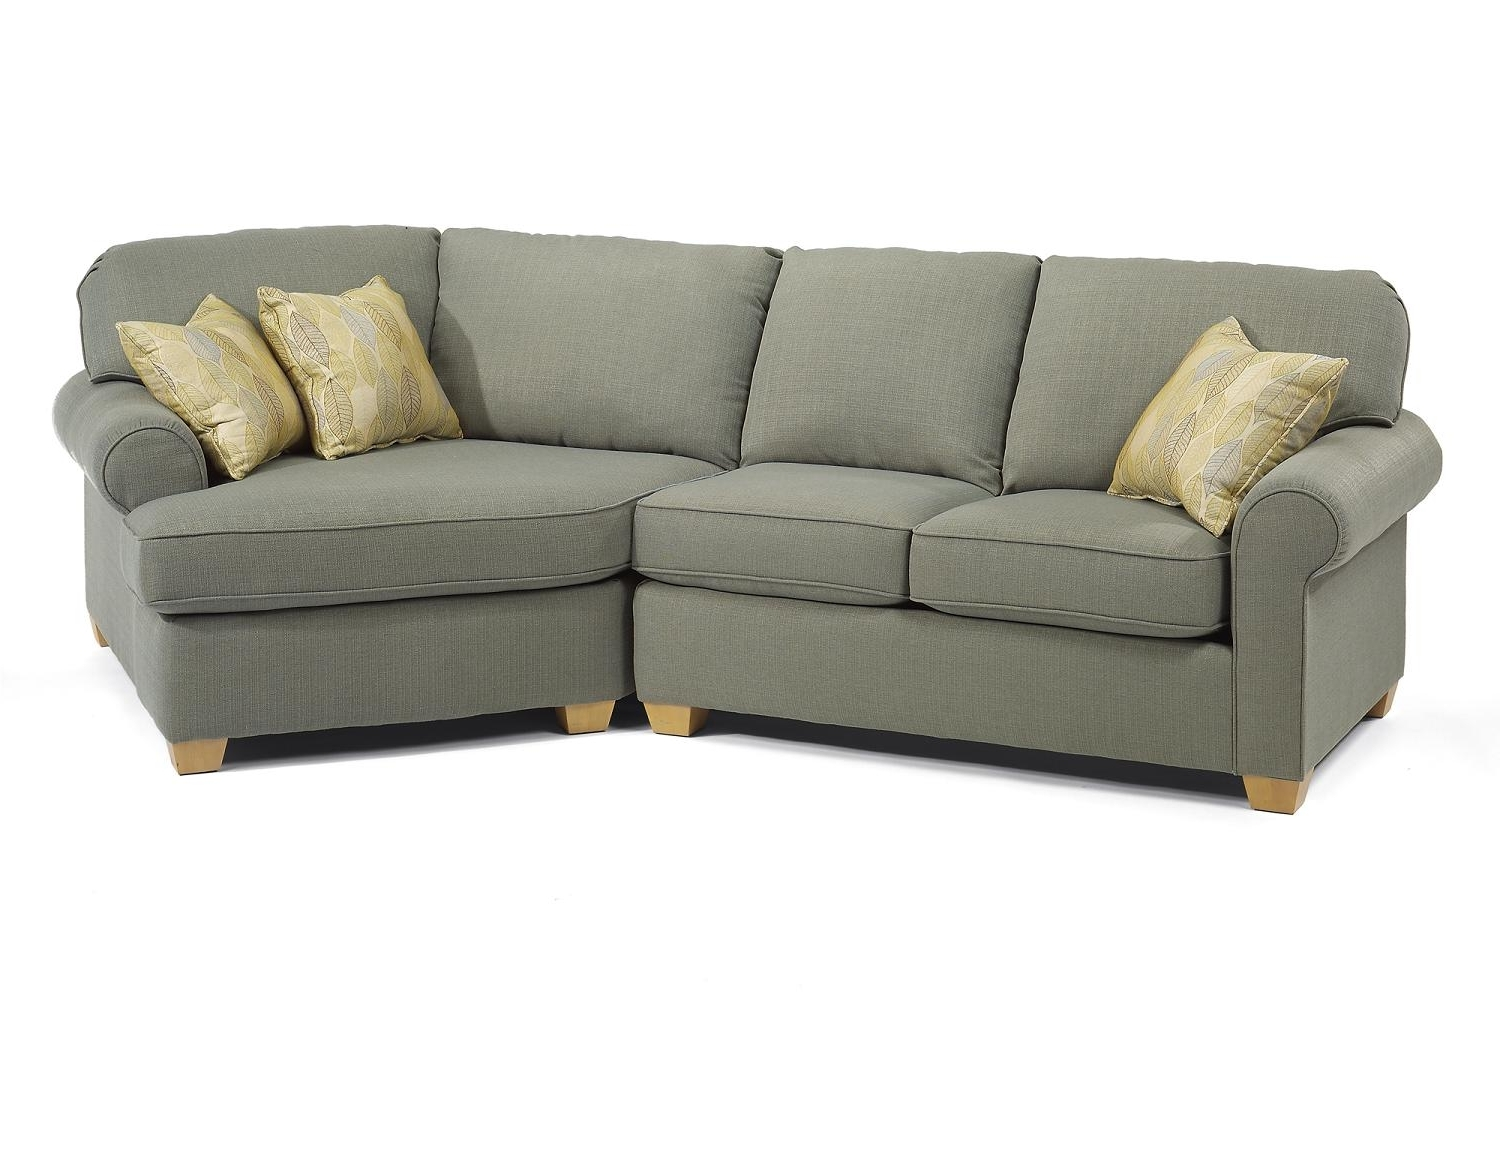 Favorite Stylish Small Sectional Sofa With Chaise — Fabrizio Design For Small Sectional Sofas (View 6 of 20)